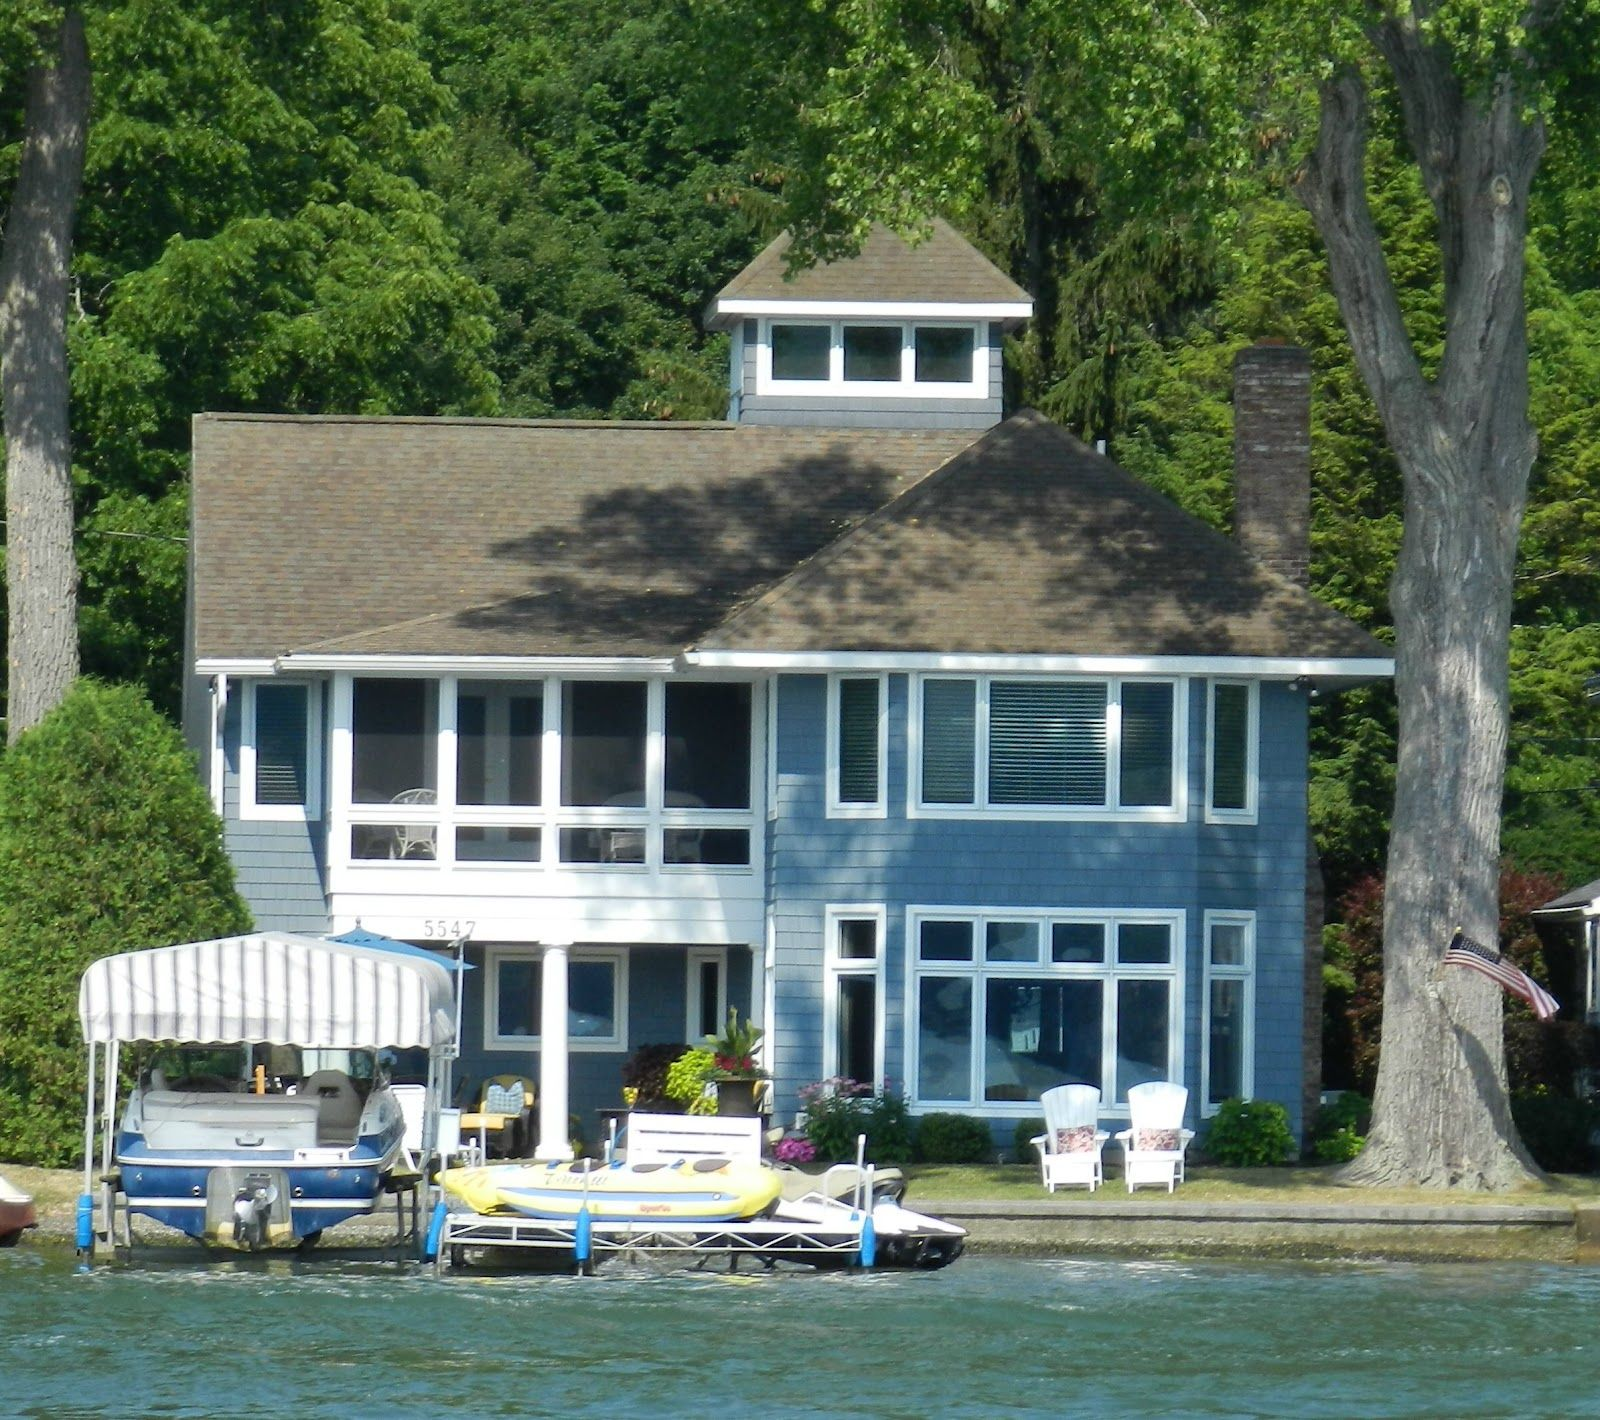 As you drive around the lake youdon't oftensee the true beautyof the houses becauseresident's investthe most on the lake view and not t...